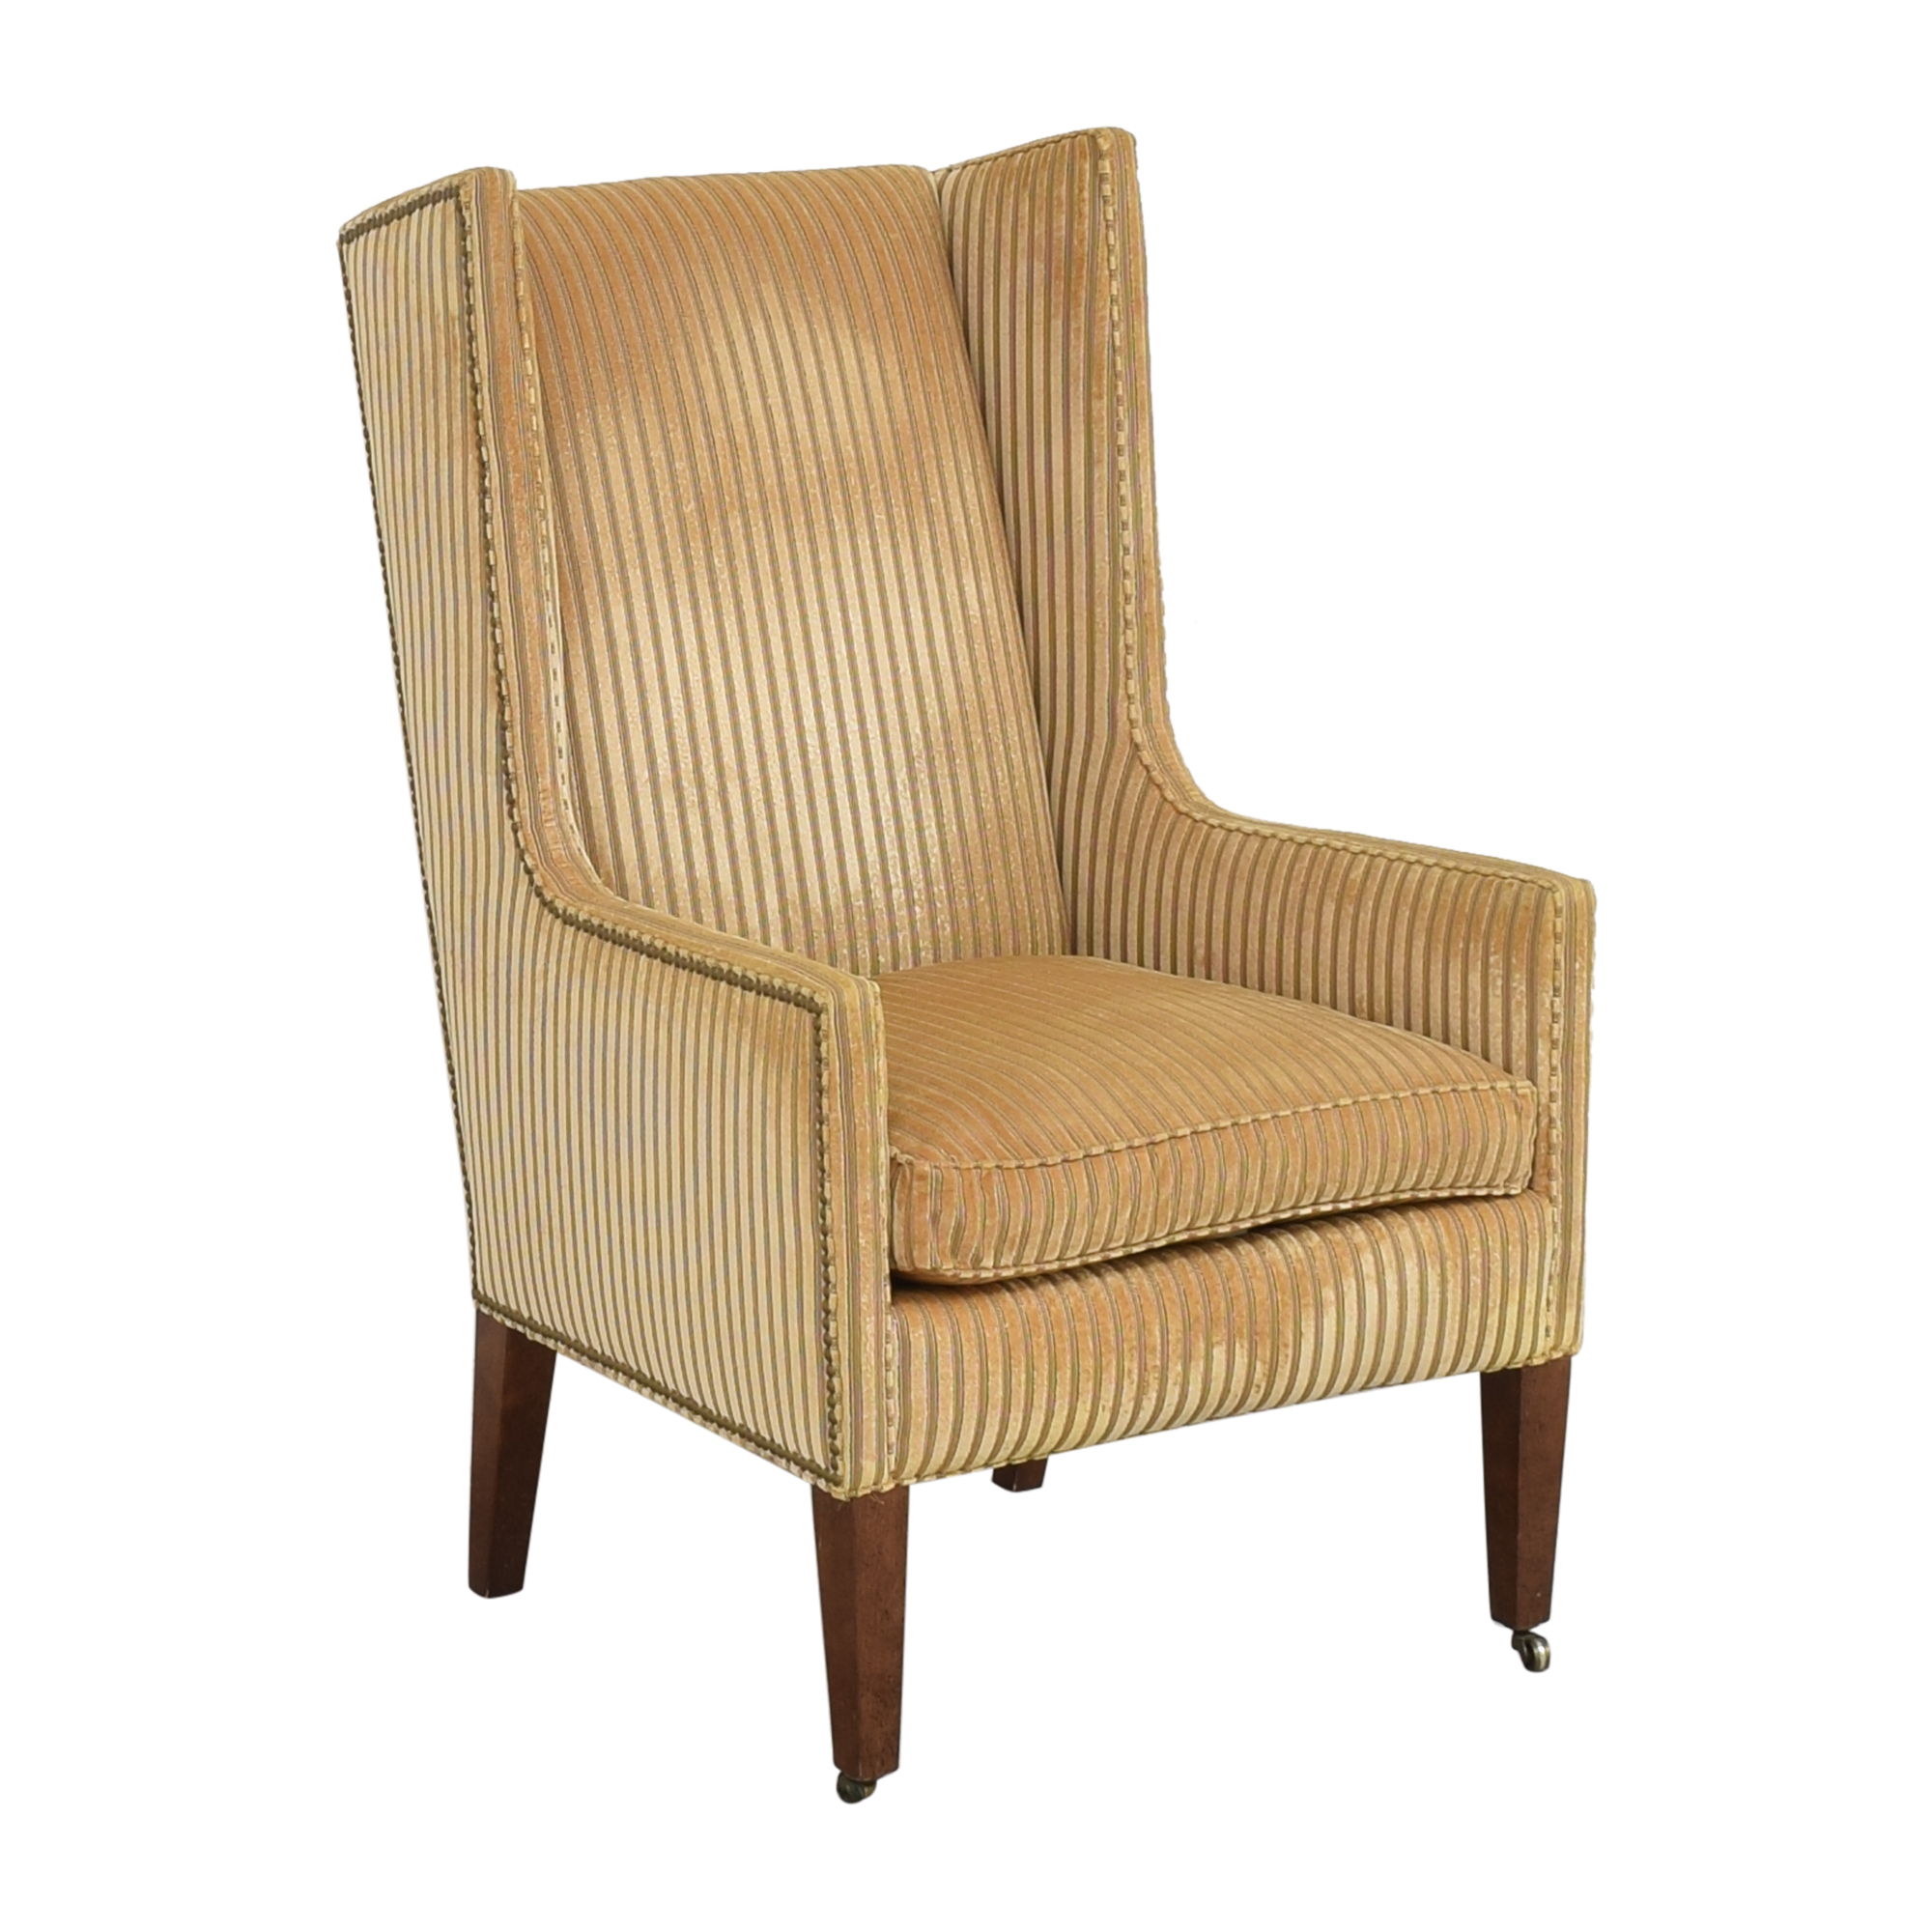 Lee Industries Lee Industries Wing Accent Chair coupon